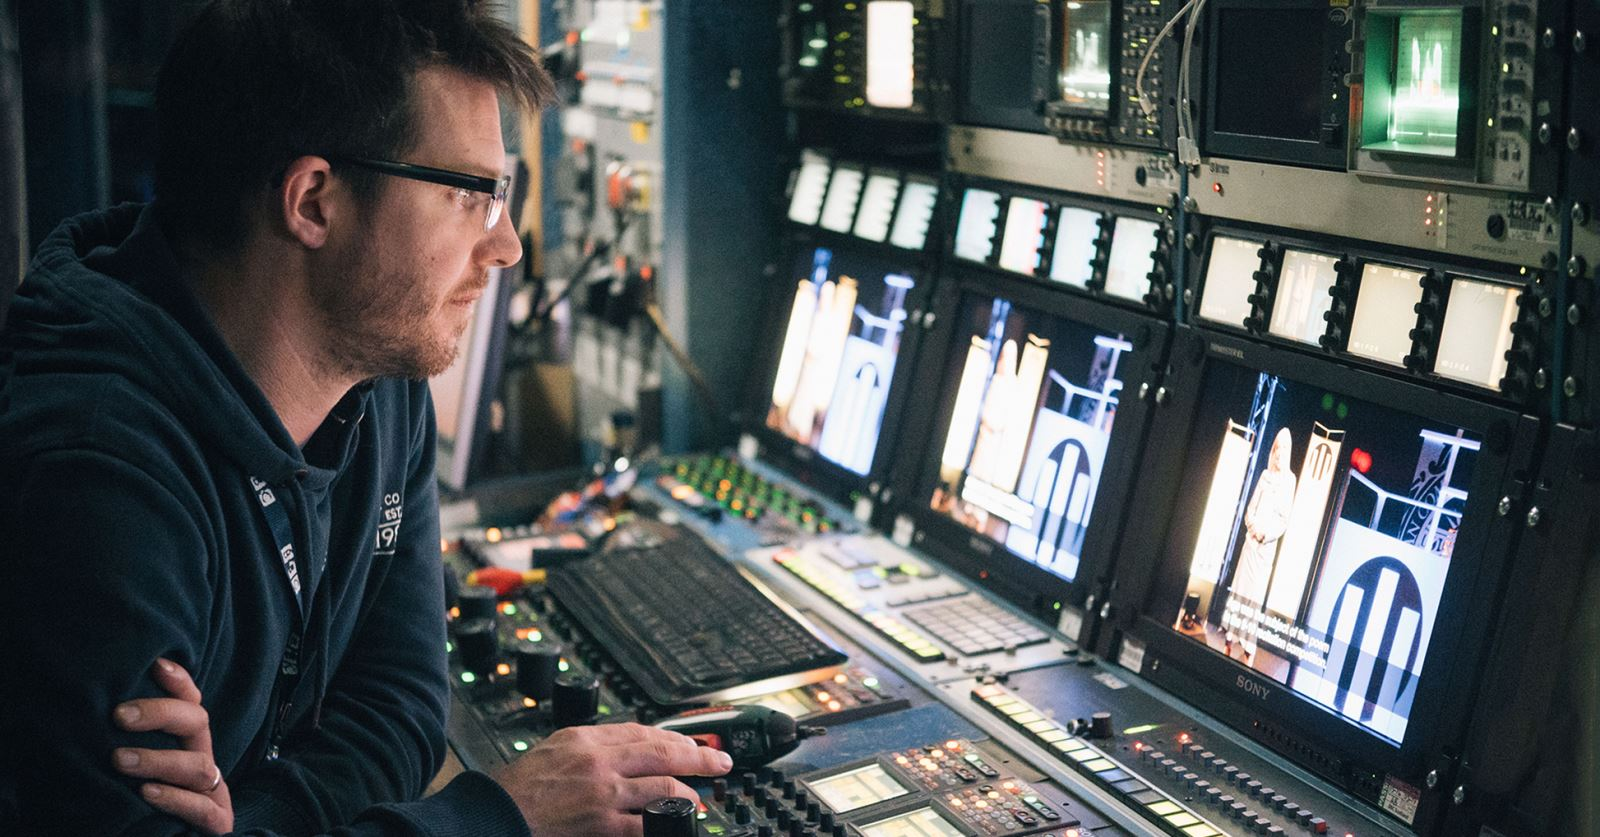 We're pleased to welcome as a GTC member vision engineer Gareth Gordon, here working in Stornoway in BBC Scotland's OB1